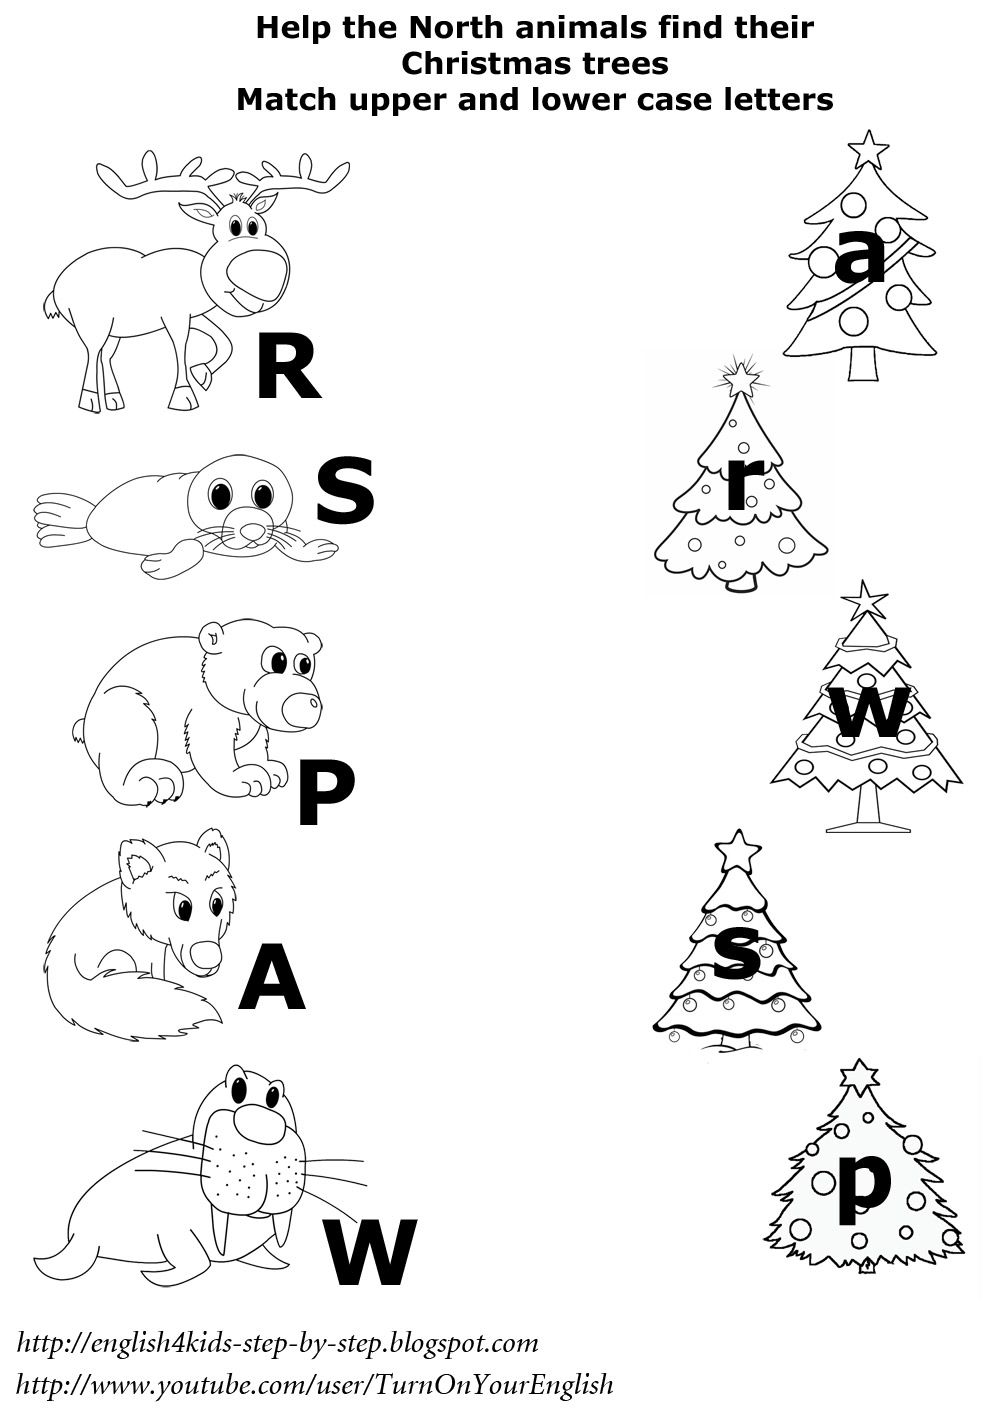 north animals christmas worksheetmatching upper and lower